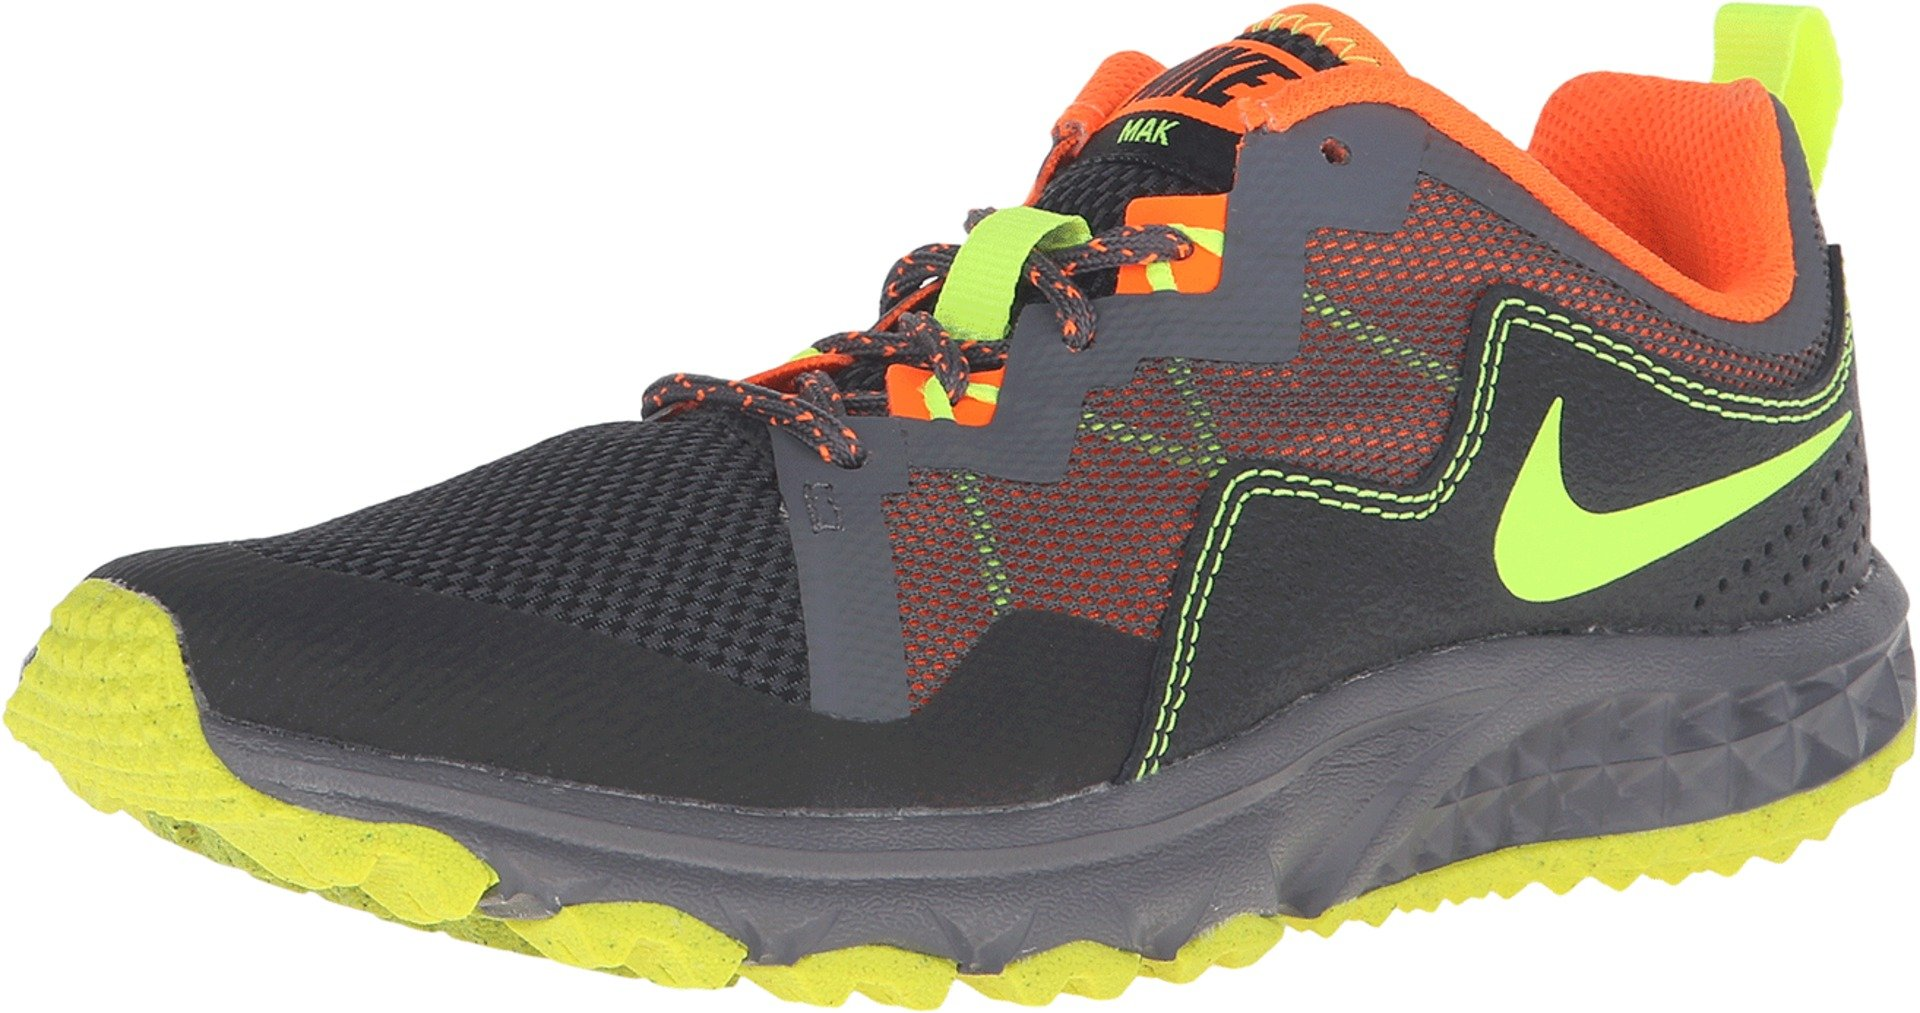 NIKE MAK Boys Trail Runner (GS), Black Volt-Dark Grey-Orange, Size 6.5Y US